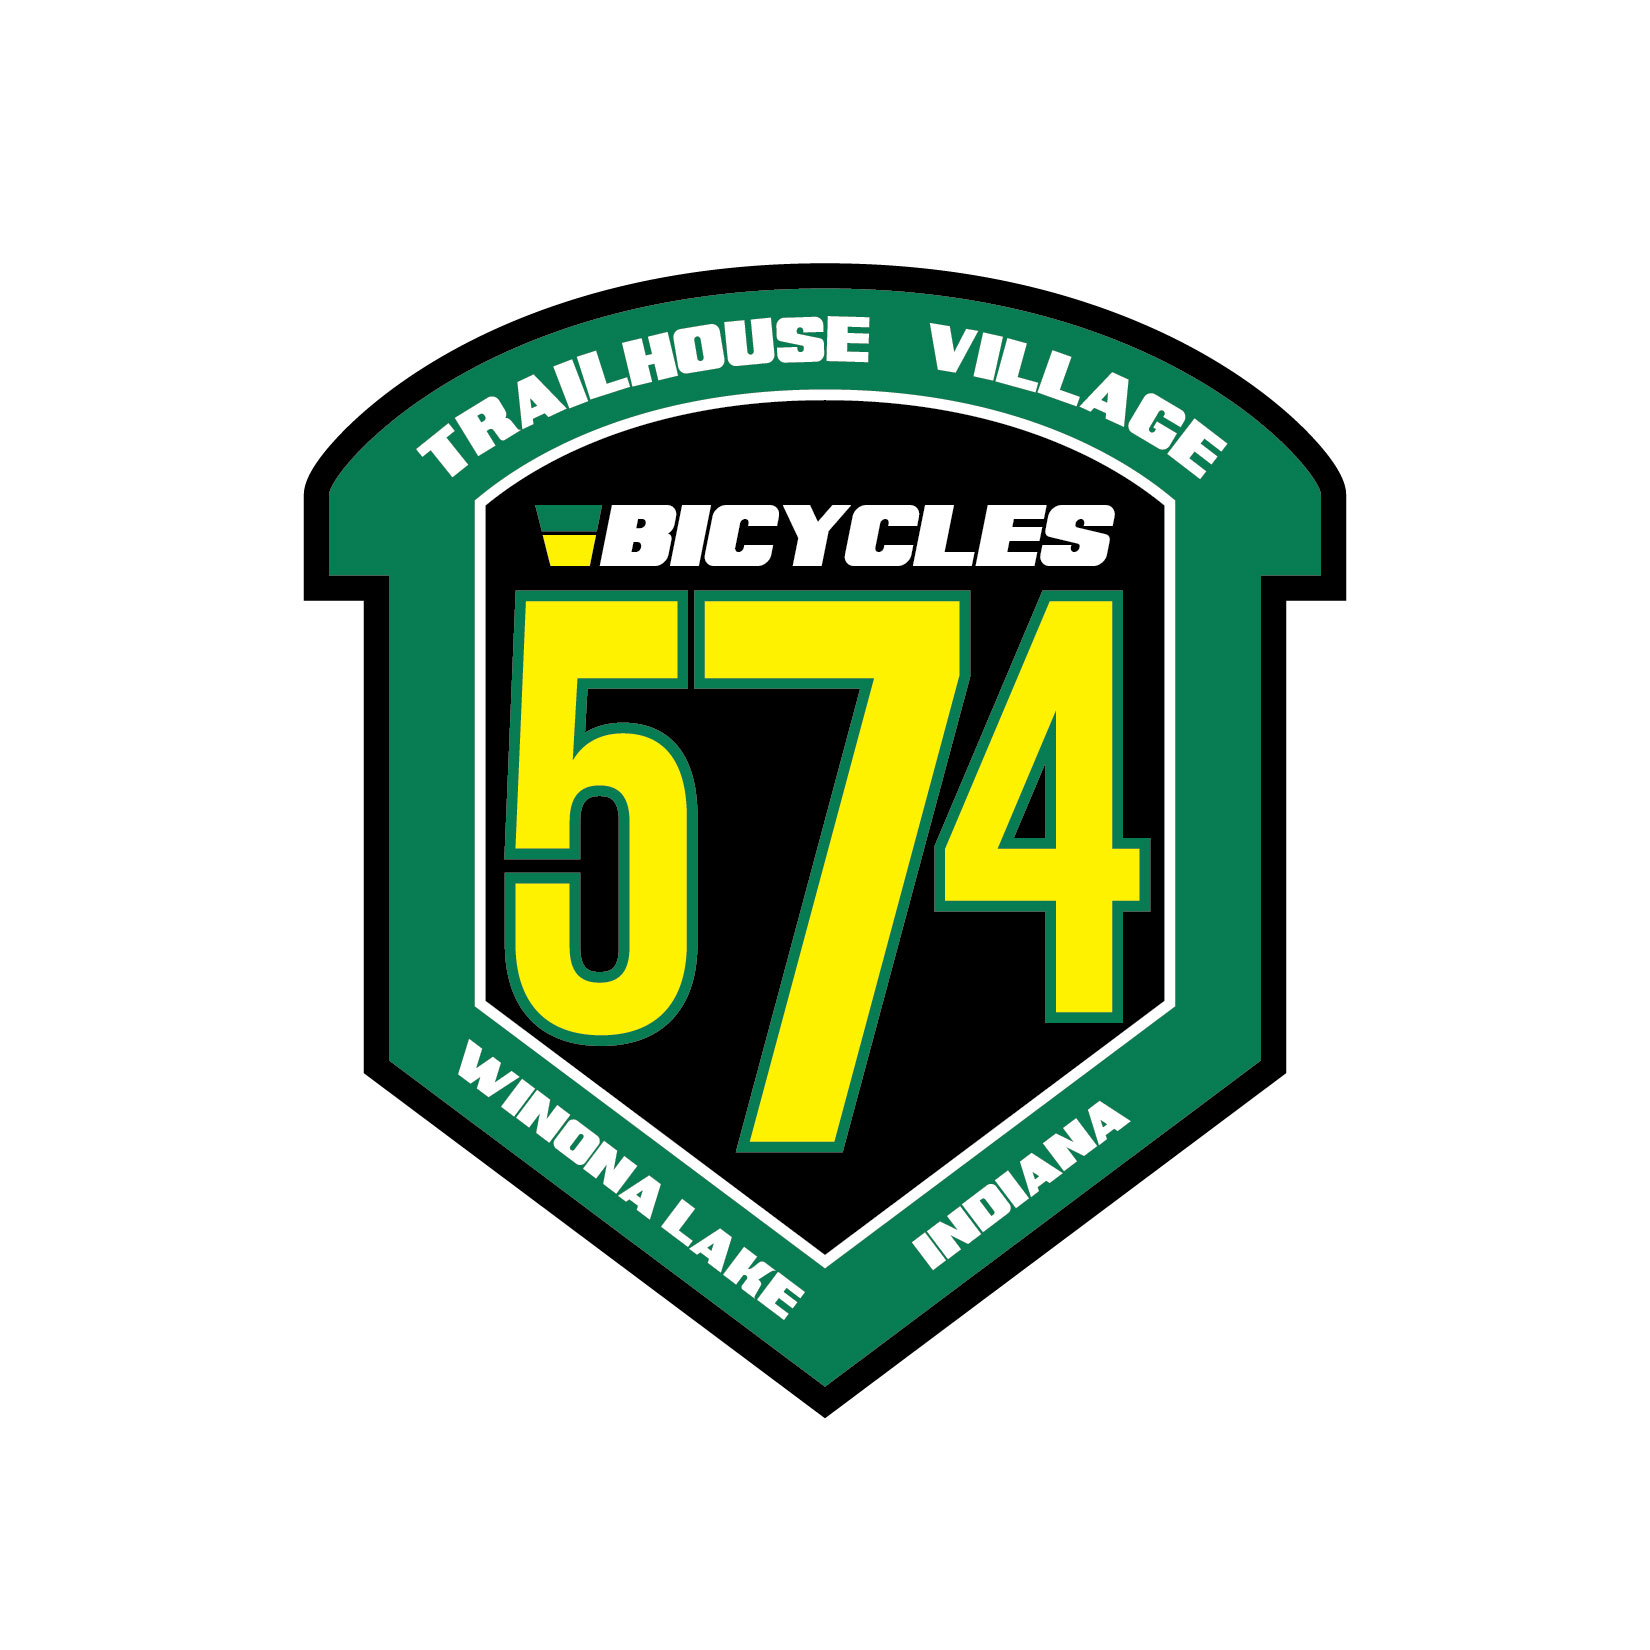 Trailhouse Bicycles Logo - HOME